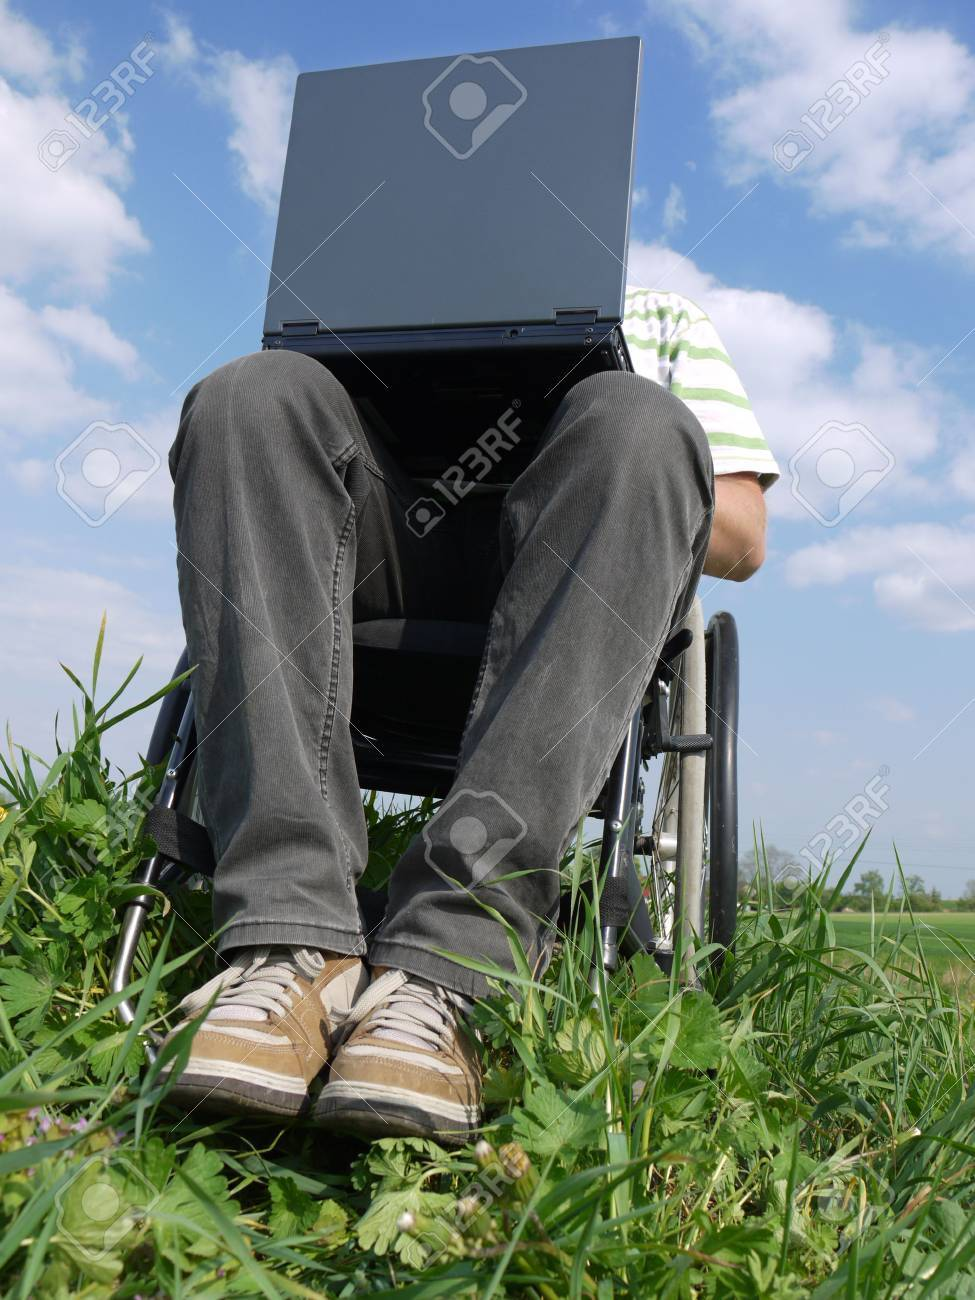 Handicapped man on wheelchair using laptop outdoors Stock Photo - 4802035